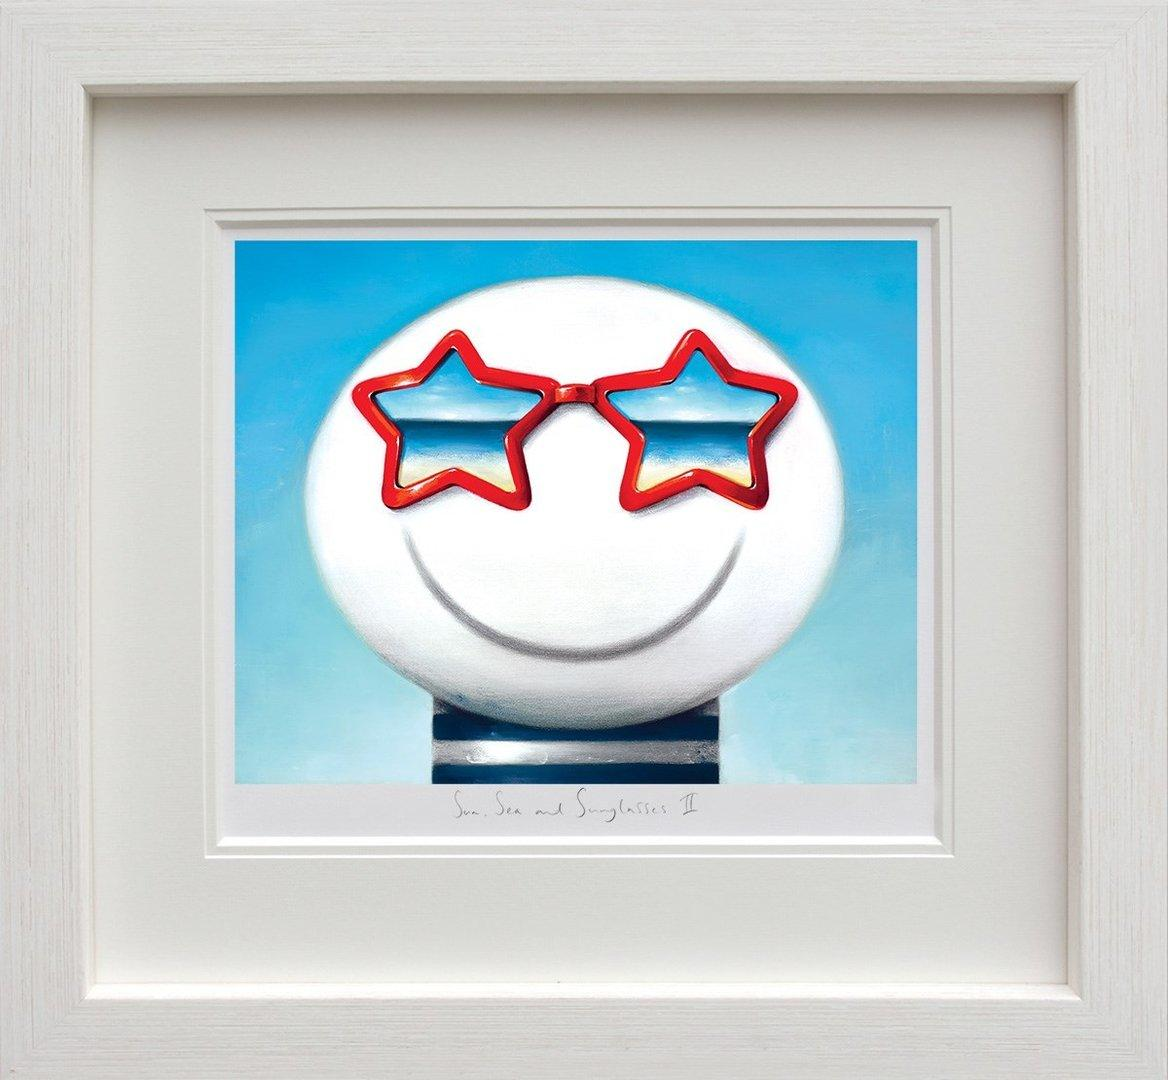 Sun, Sea and Sunglasses II by Doug Hyde - Limited Edition ZHYD674